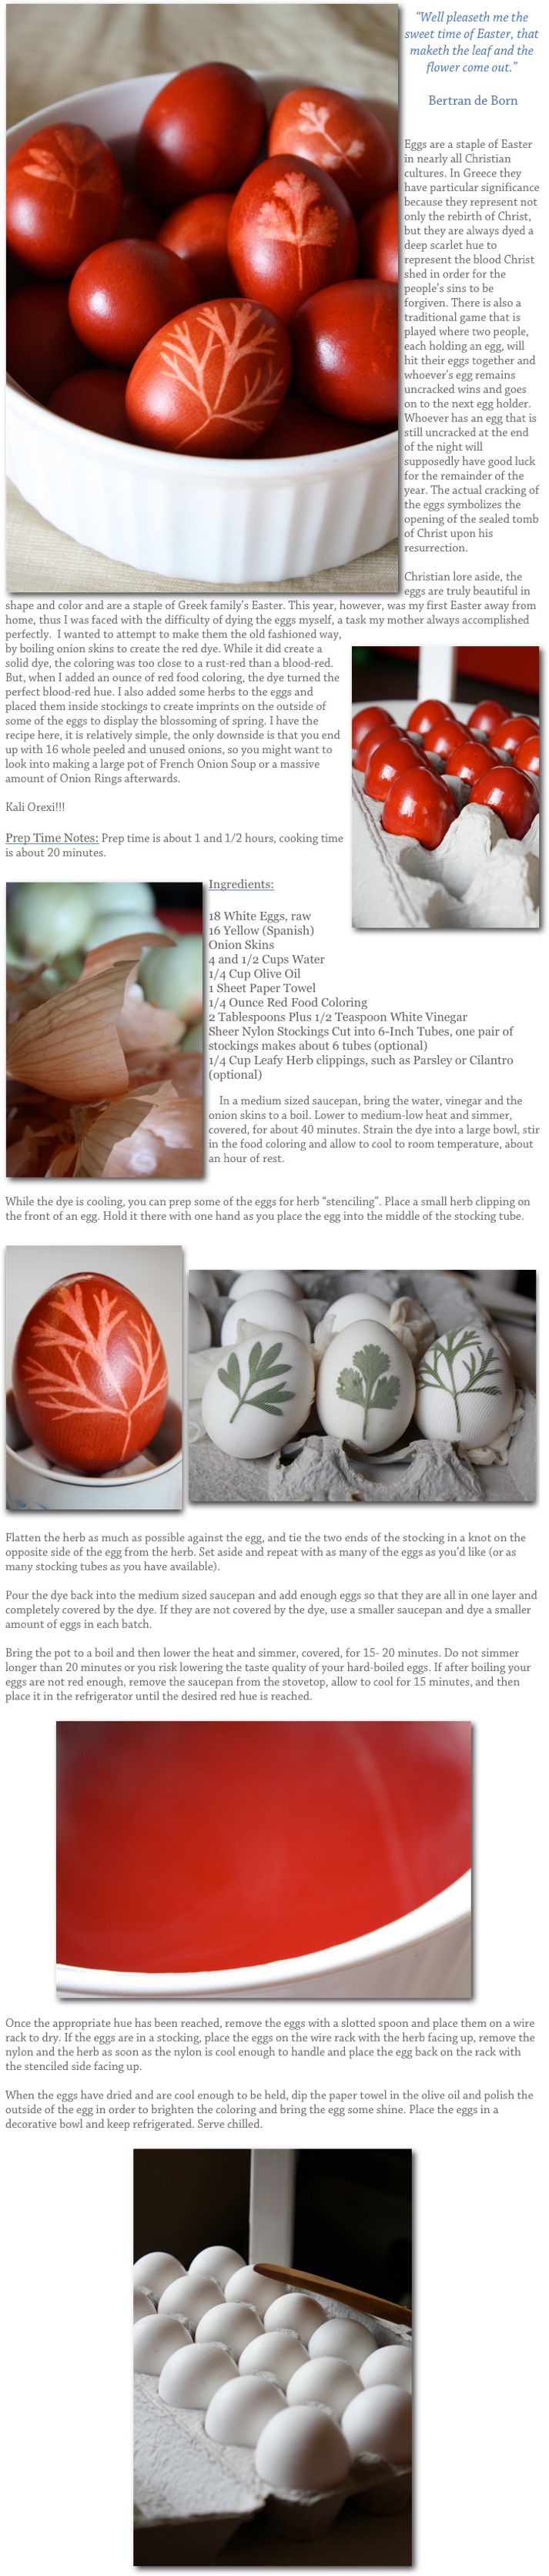 Onion dyed Easter eggs in the Greek methodOrthodox Easter, 6002814 Pixel, Diy Easter, Dyed Easter, Die Easter, Easter Eggs, Pretty Easter, Greek Easter, Holiday Crafts